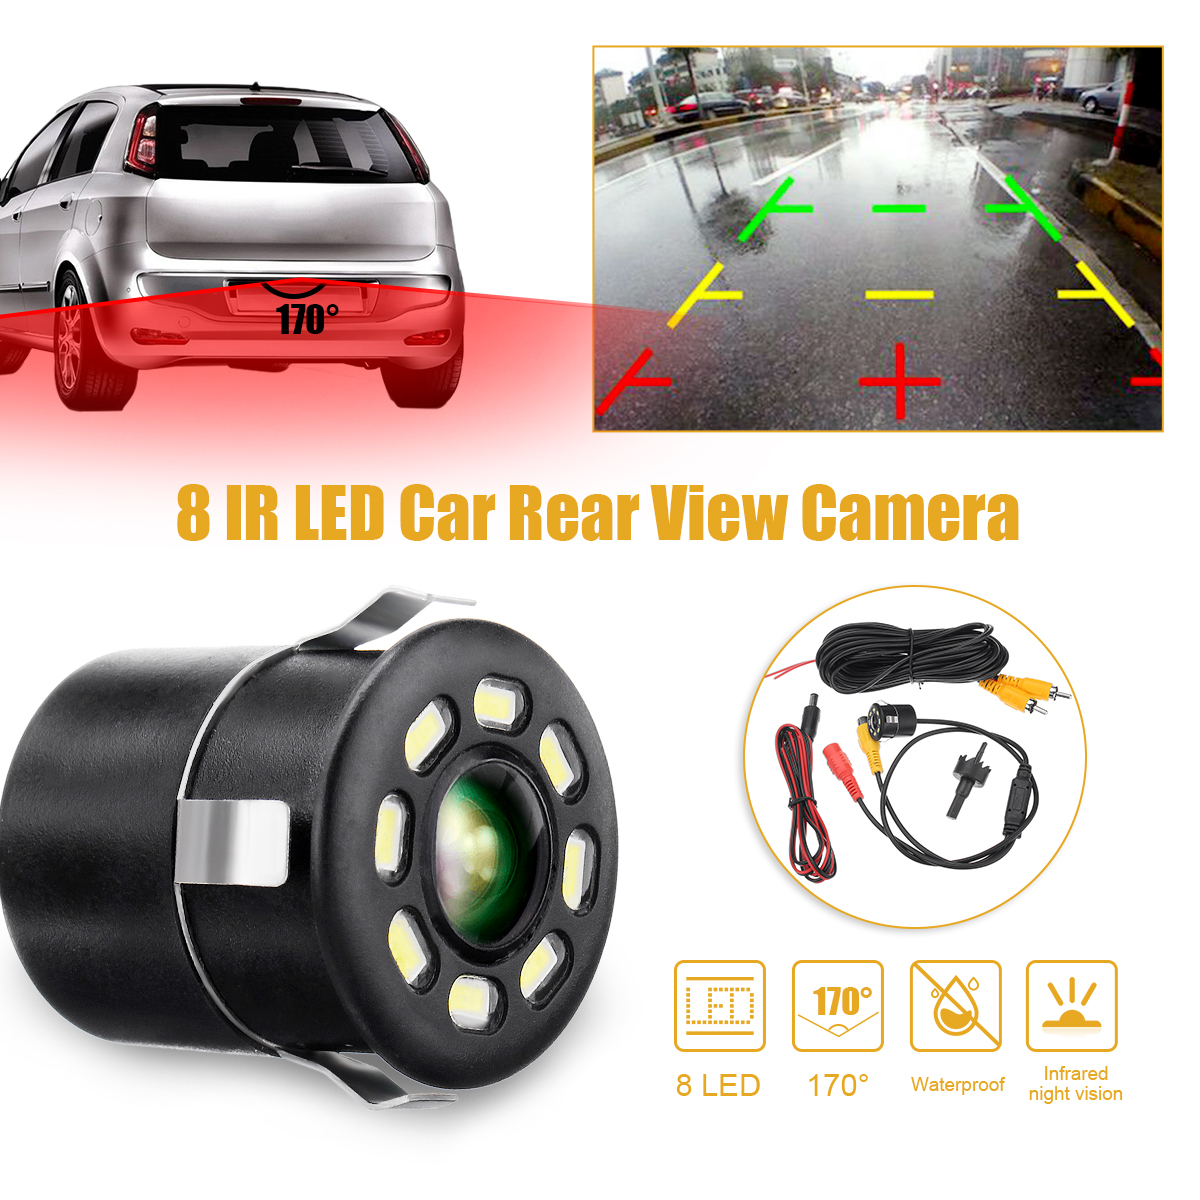 170 Degree Lens 8 LED Car Auto CCD Rear View Camera Waterproof Backup Monitor Parking Reversing Camera HD IR Night Vision topbox car rear view camera 8 led night vision reversing auto parking monitor ccd waterproof 170 degree hd video